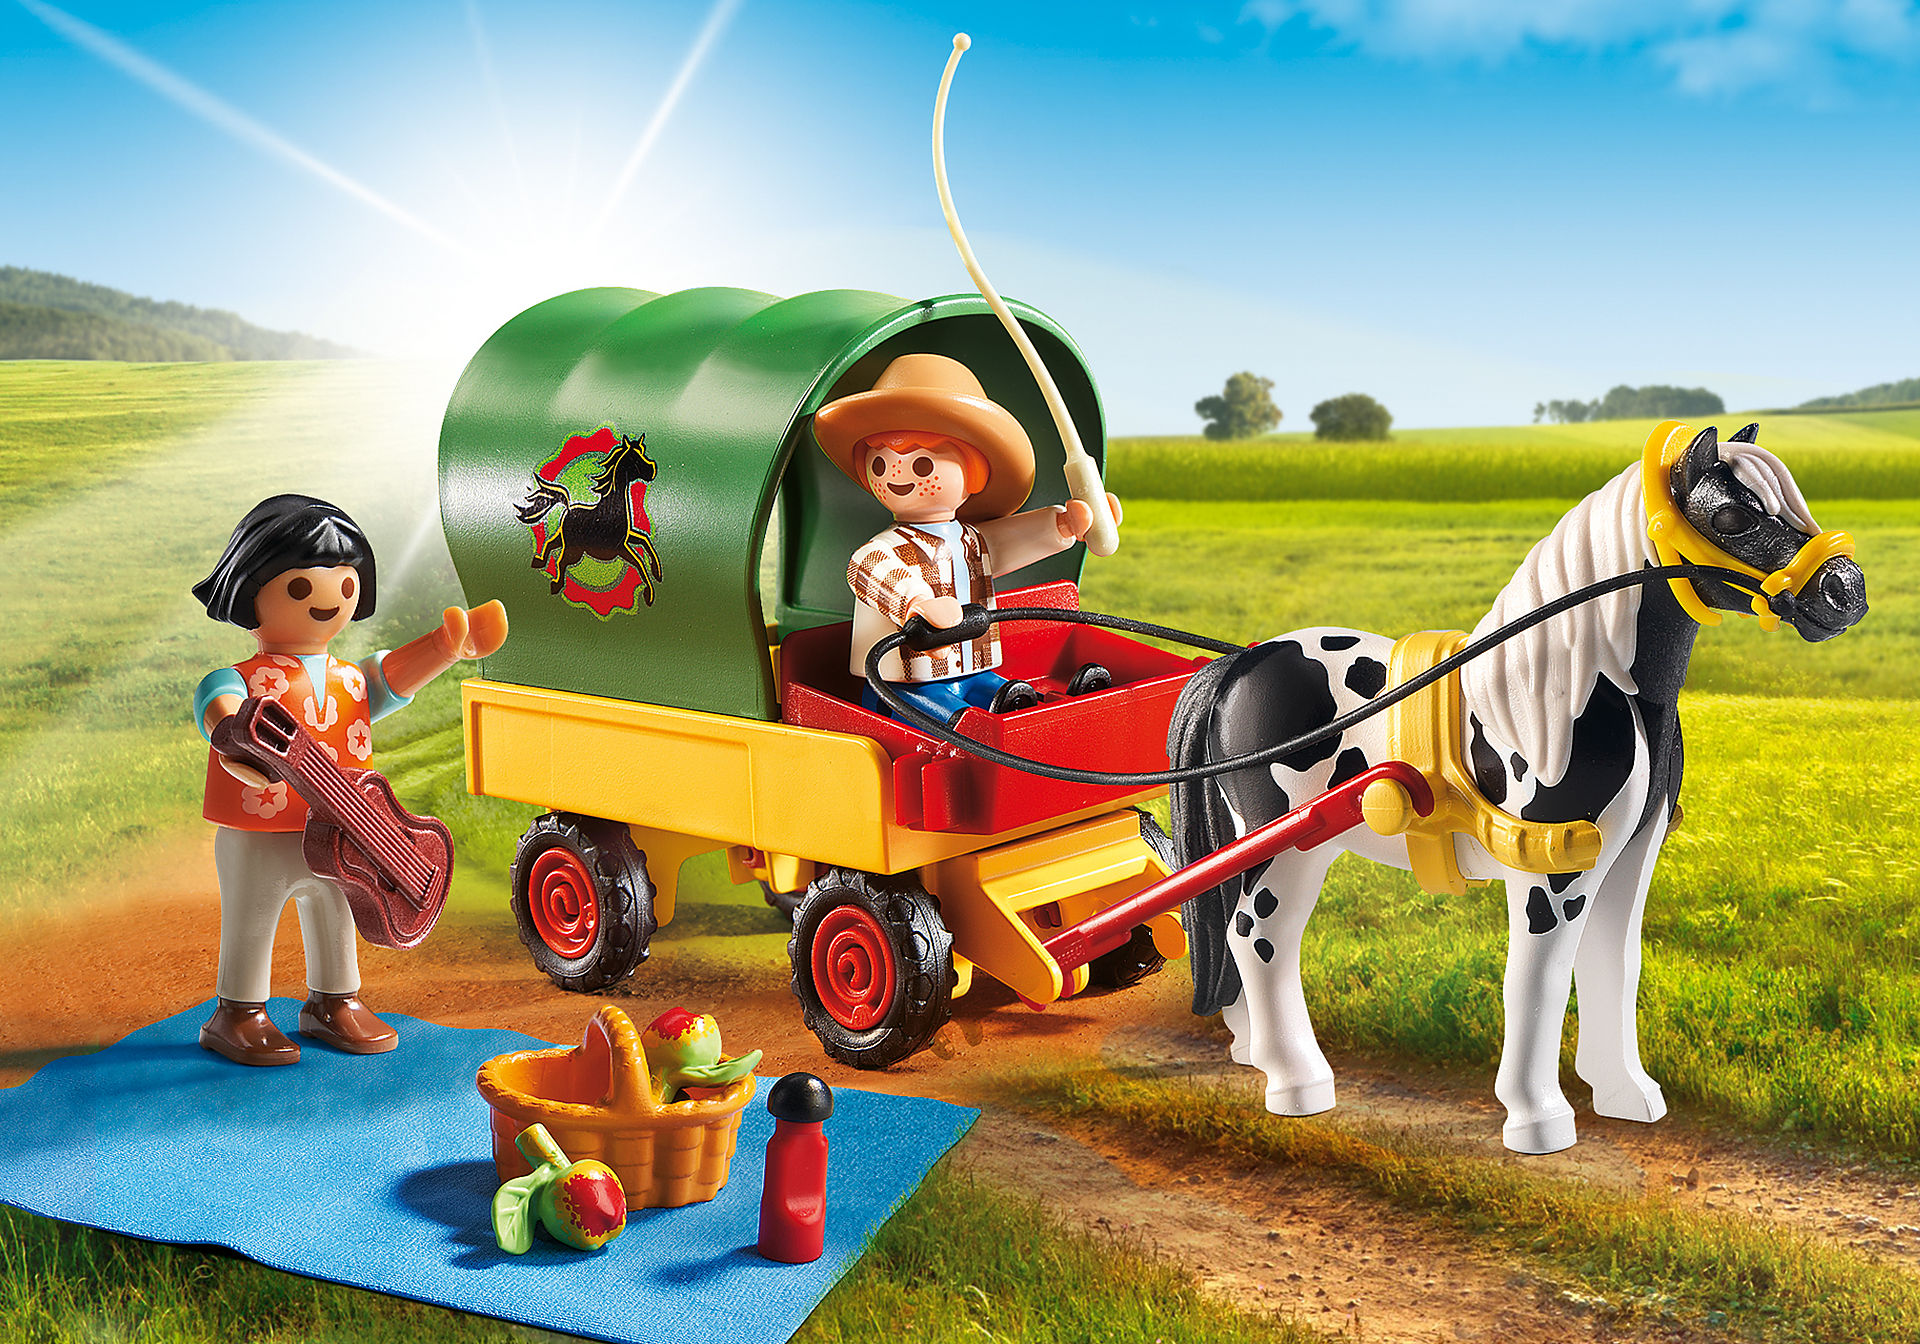 http://media.playmobil.com/i/playmobil/6948_product_detail/Picnic with Pony Wagon